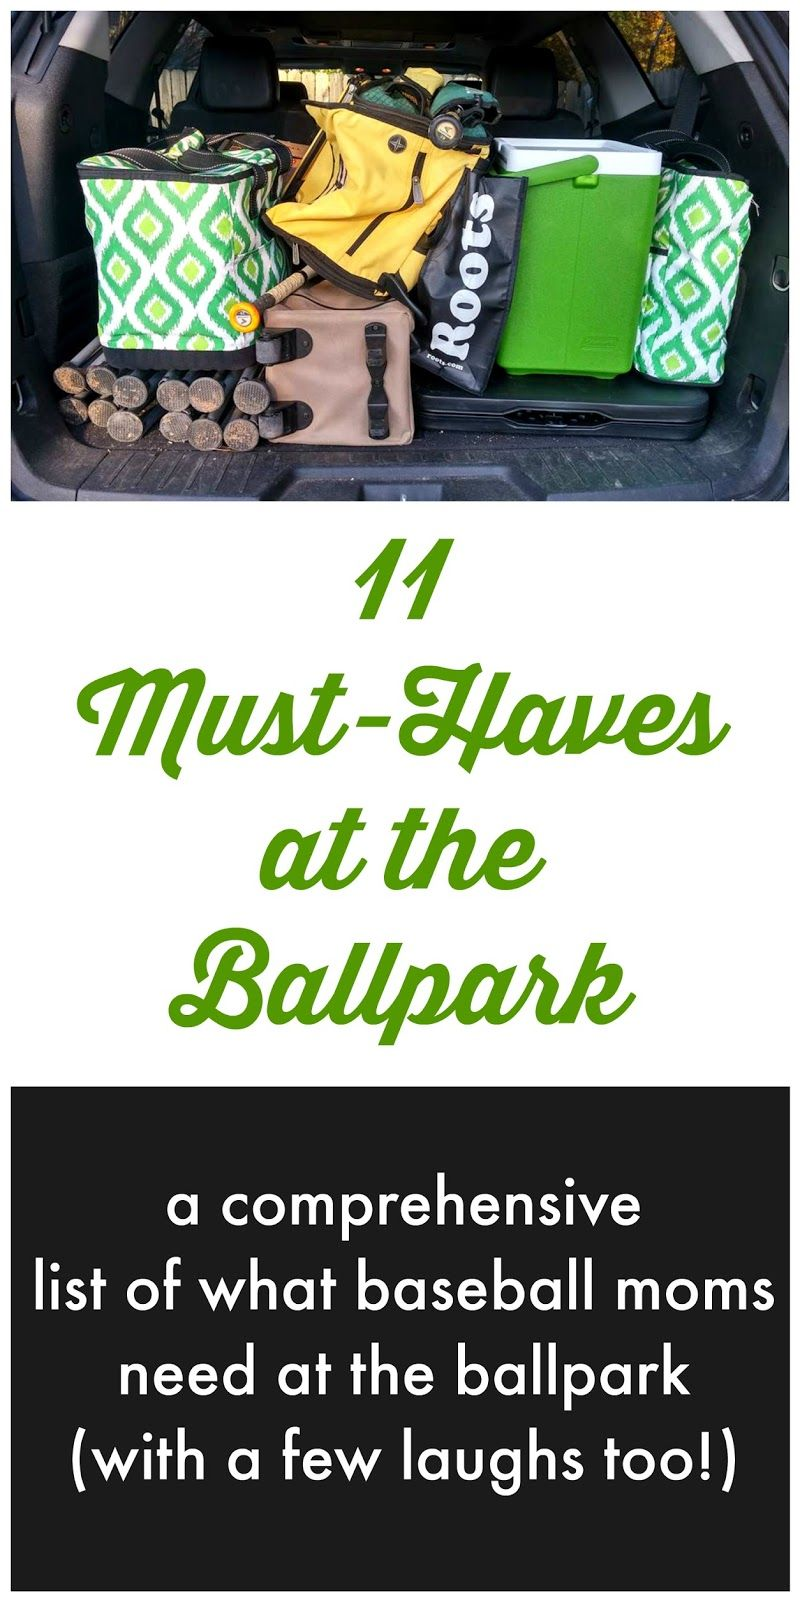 Photo of 11 Must-Haves at the Ballpark